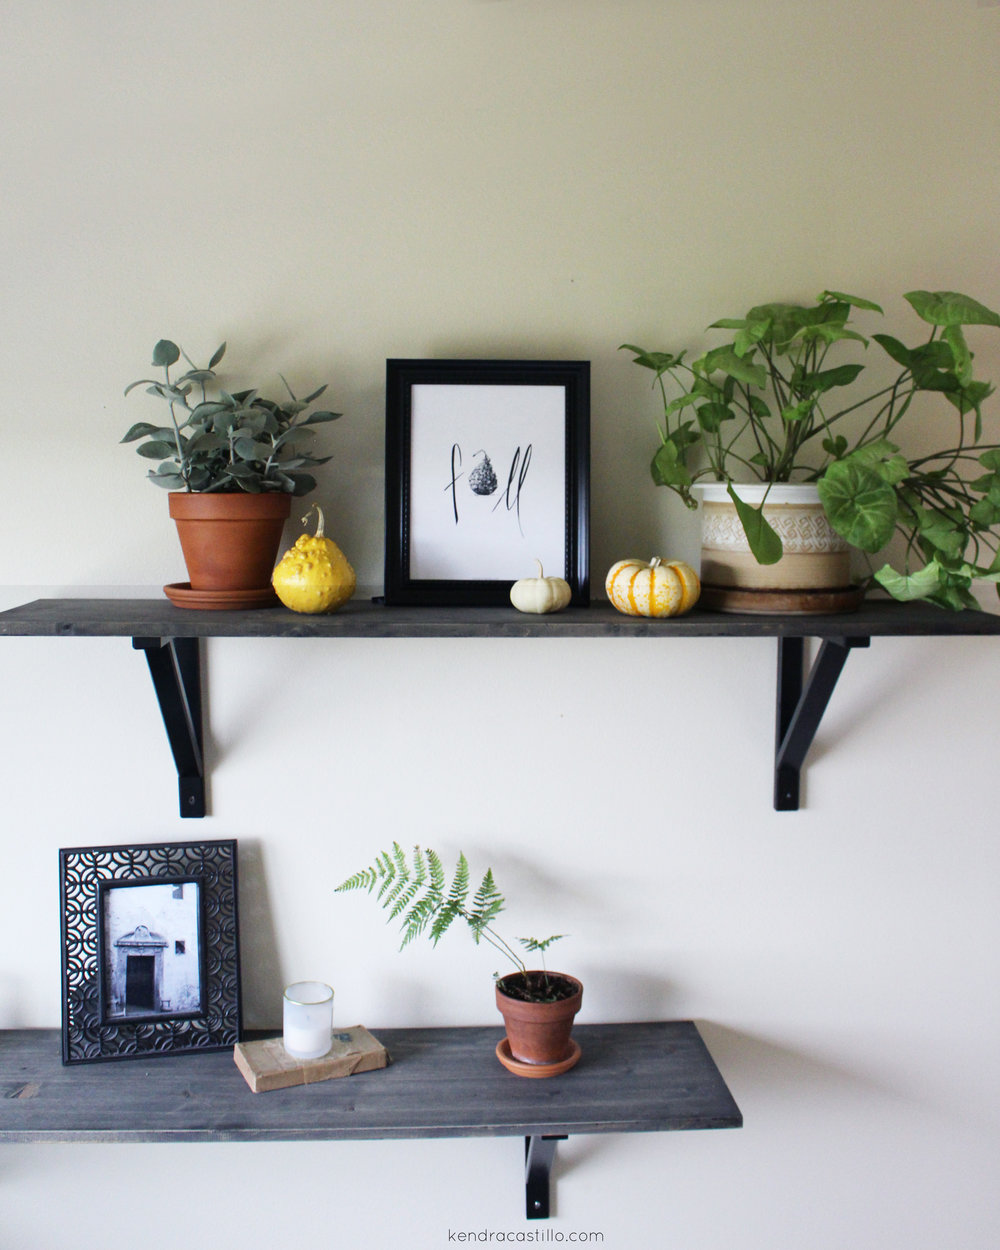 Kendra Castillo: Styling Open Shelves for Fall + a Free Fall Printable